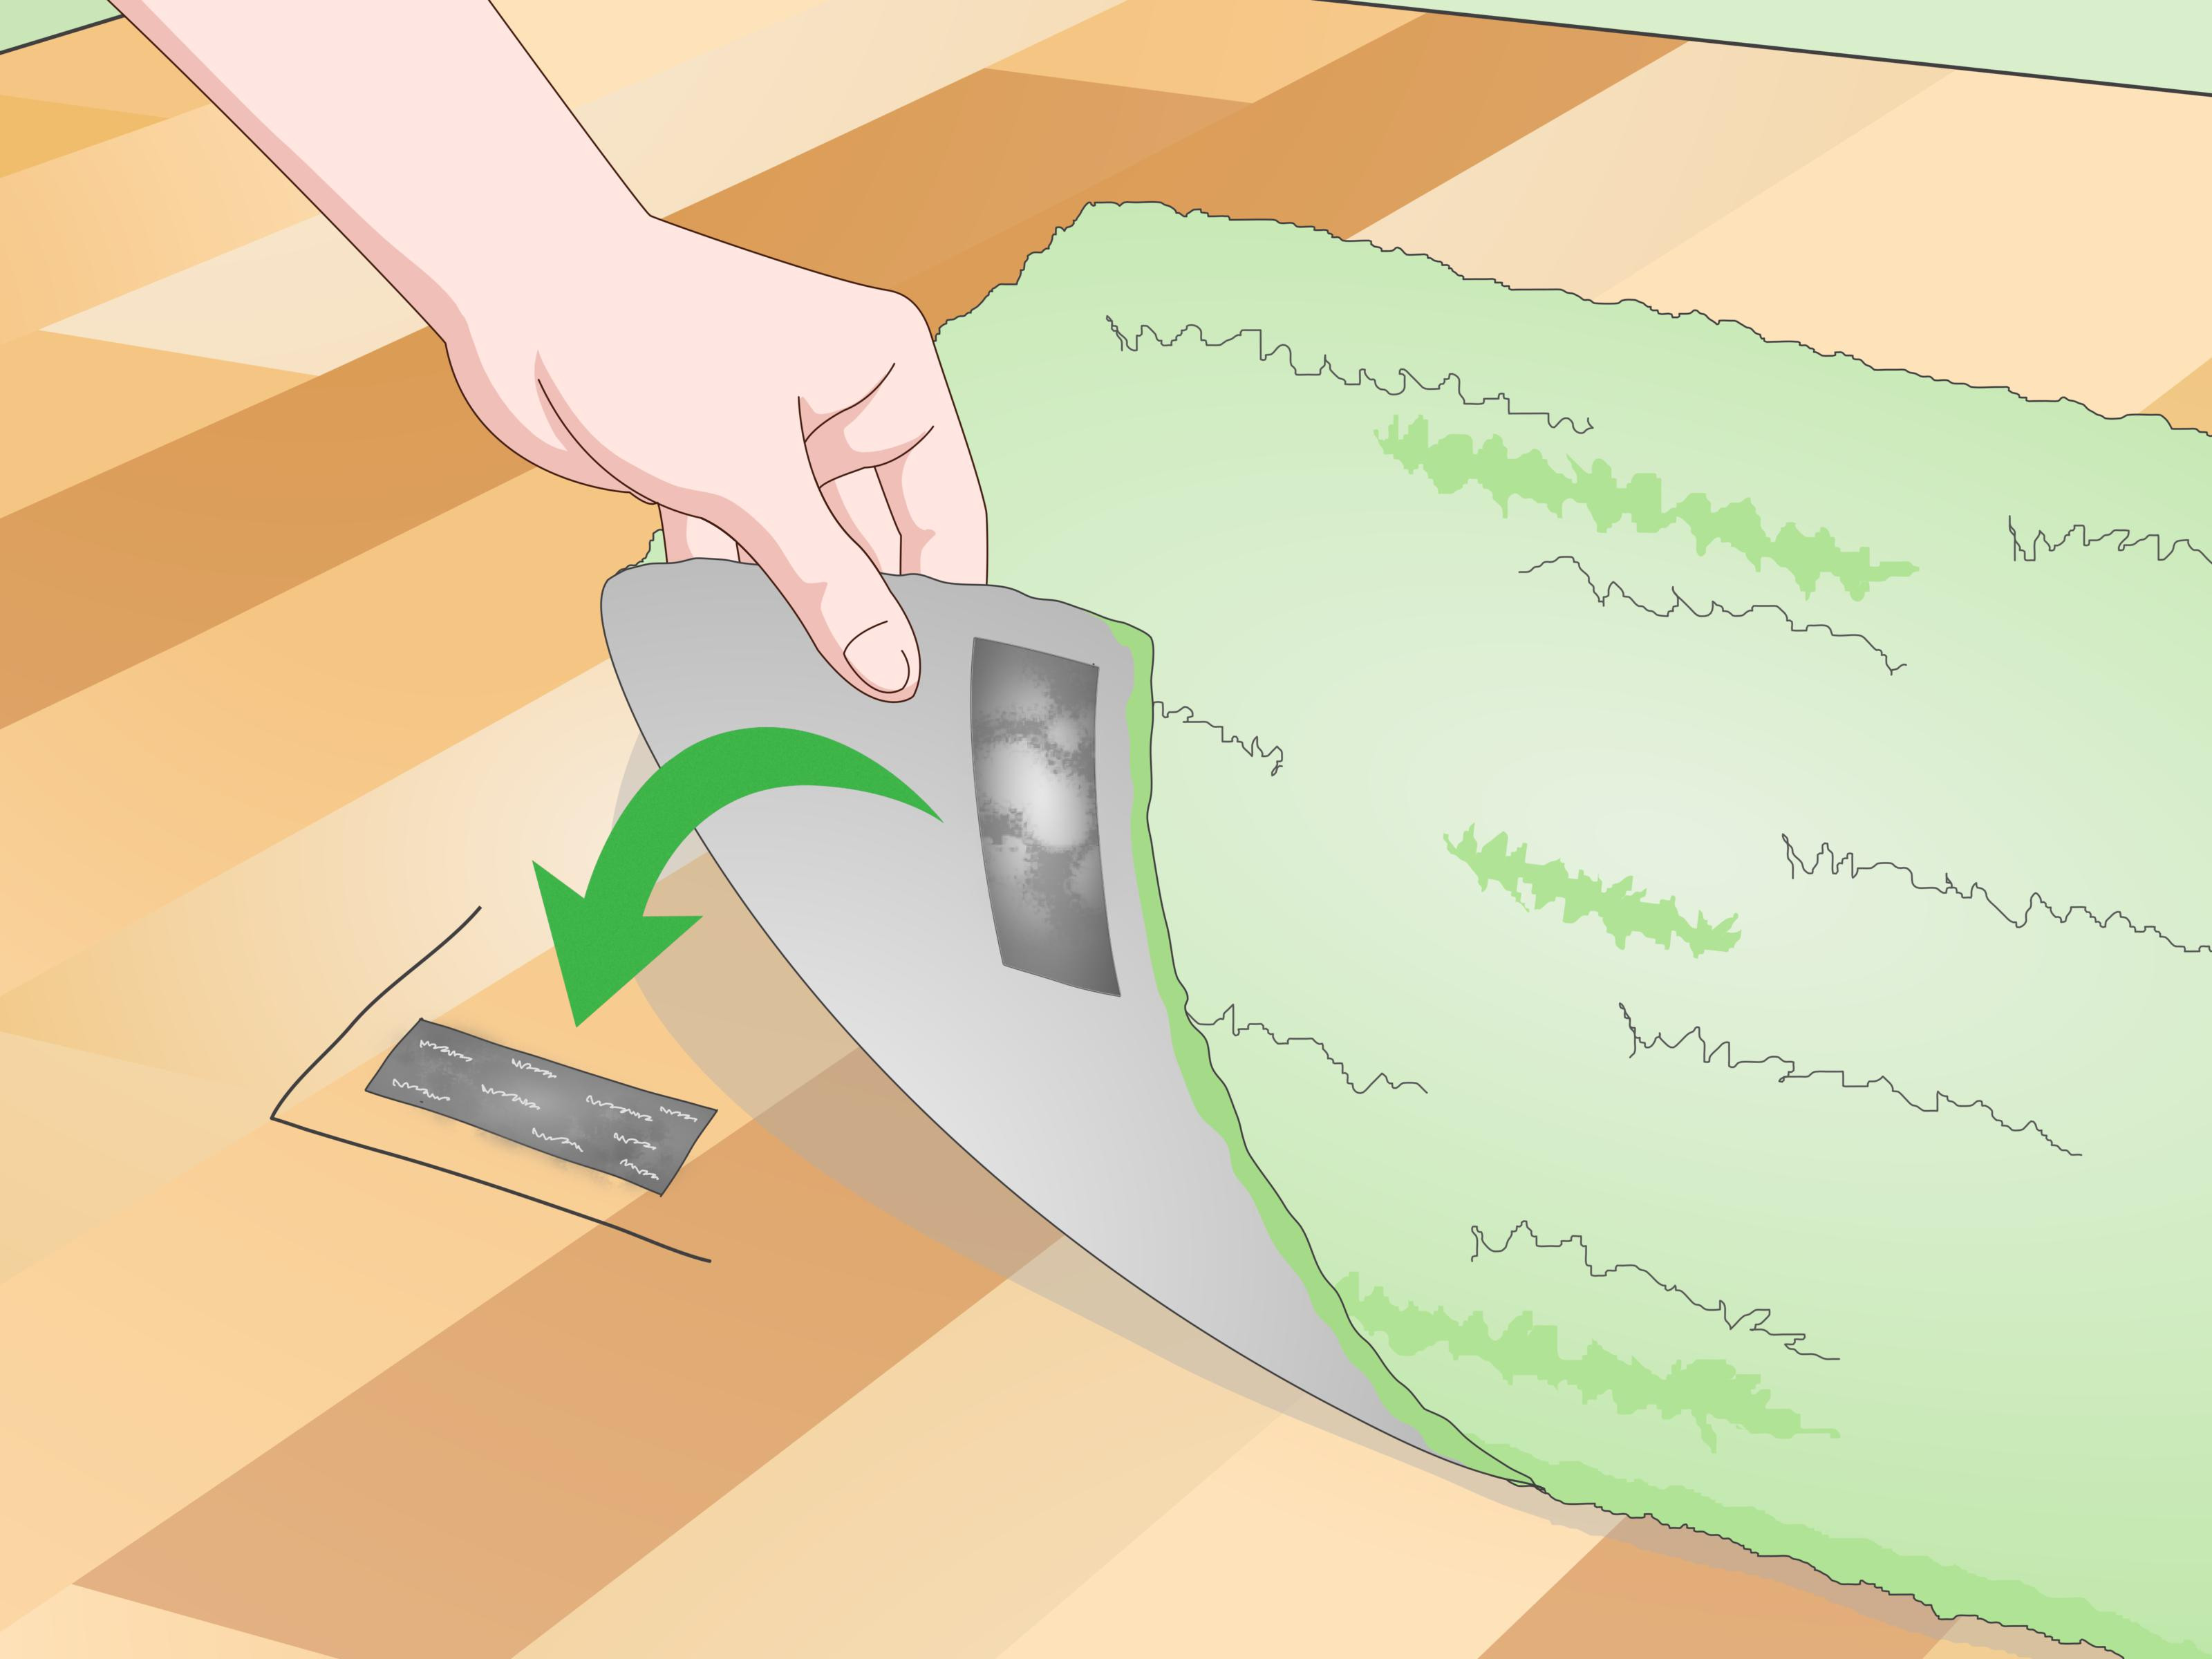 felt pads for hardwood floors of 3 ways to stop a rug from moving on a wooden floor wikihow regarding stop a rug from moving on a wooden floor step 18